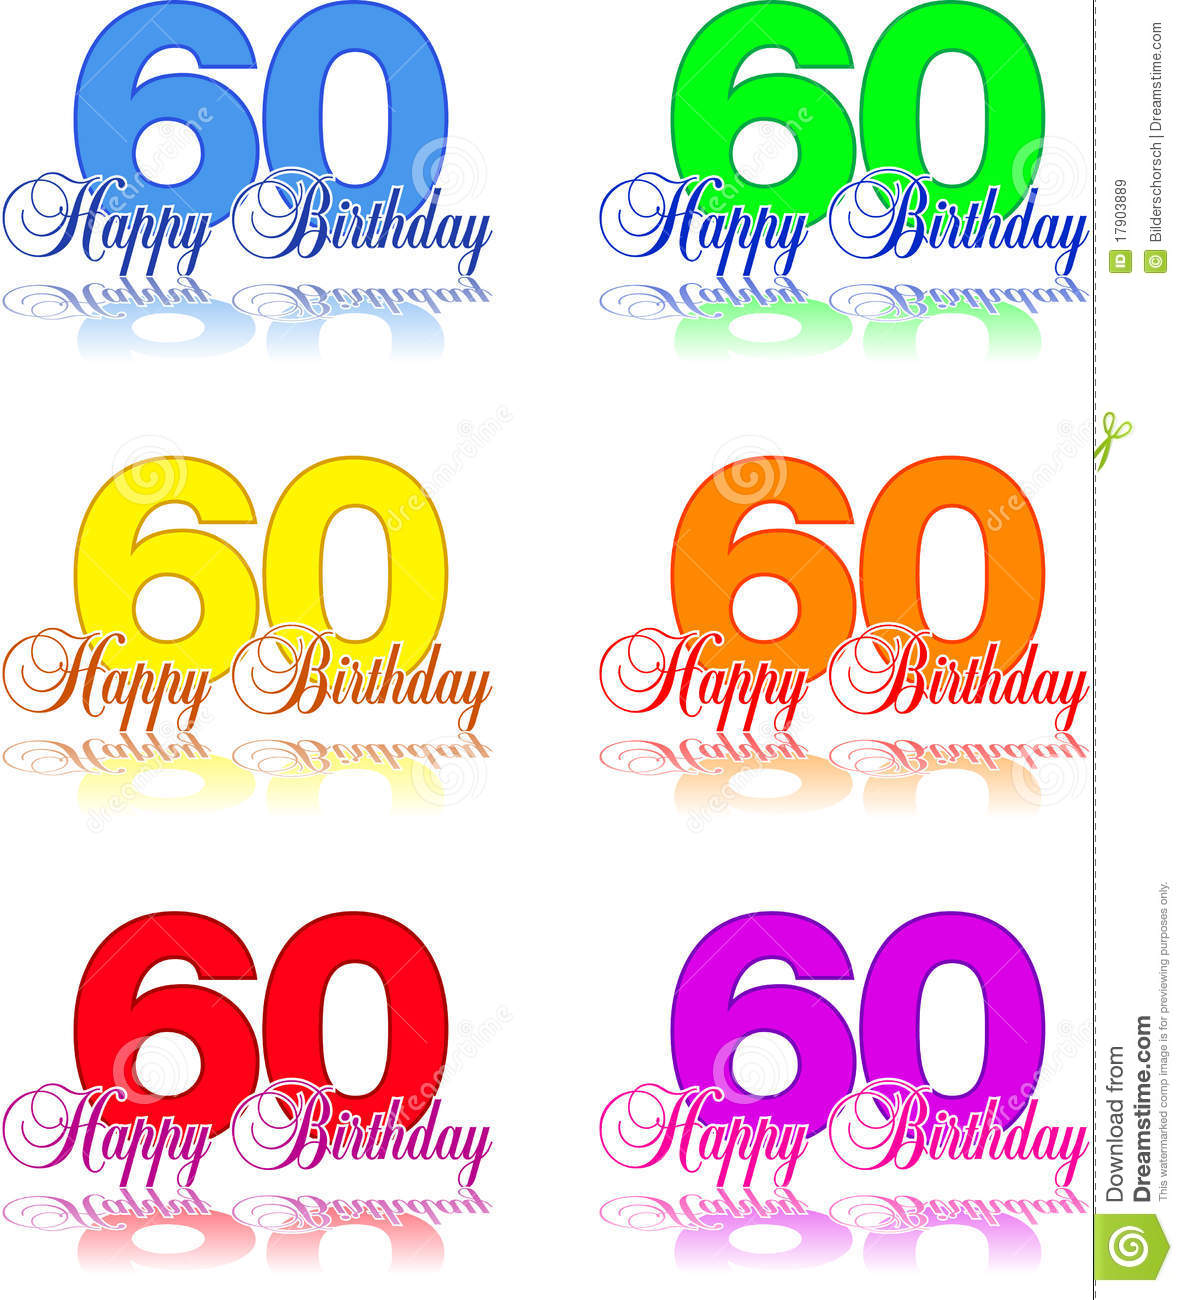 Happy Birthday 60 Royalty Free Stock Images - Image: 17903889